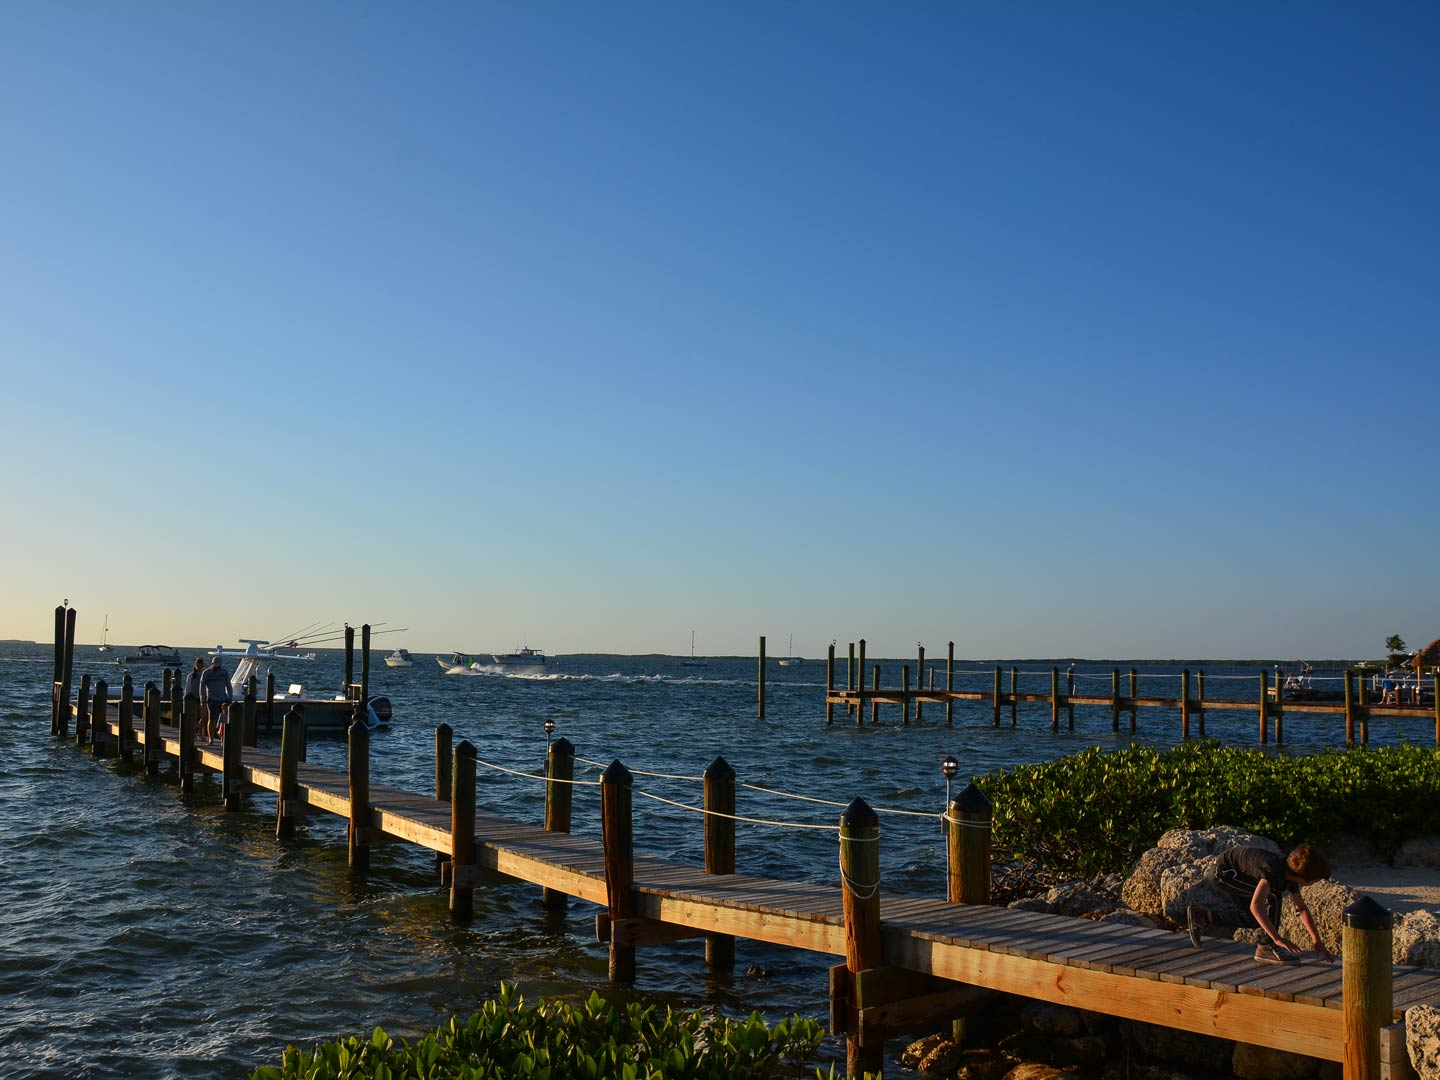 A view of a pier in Key Largo, Florida